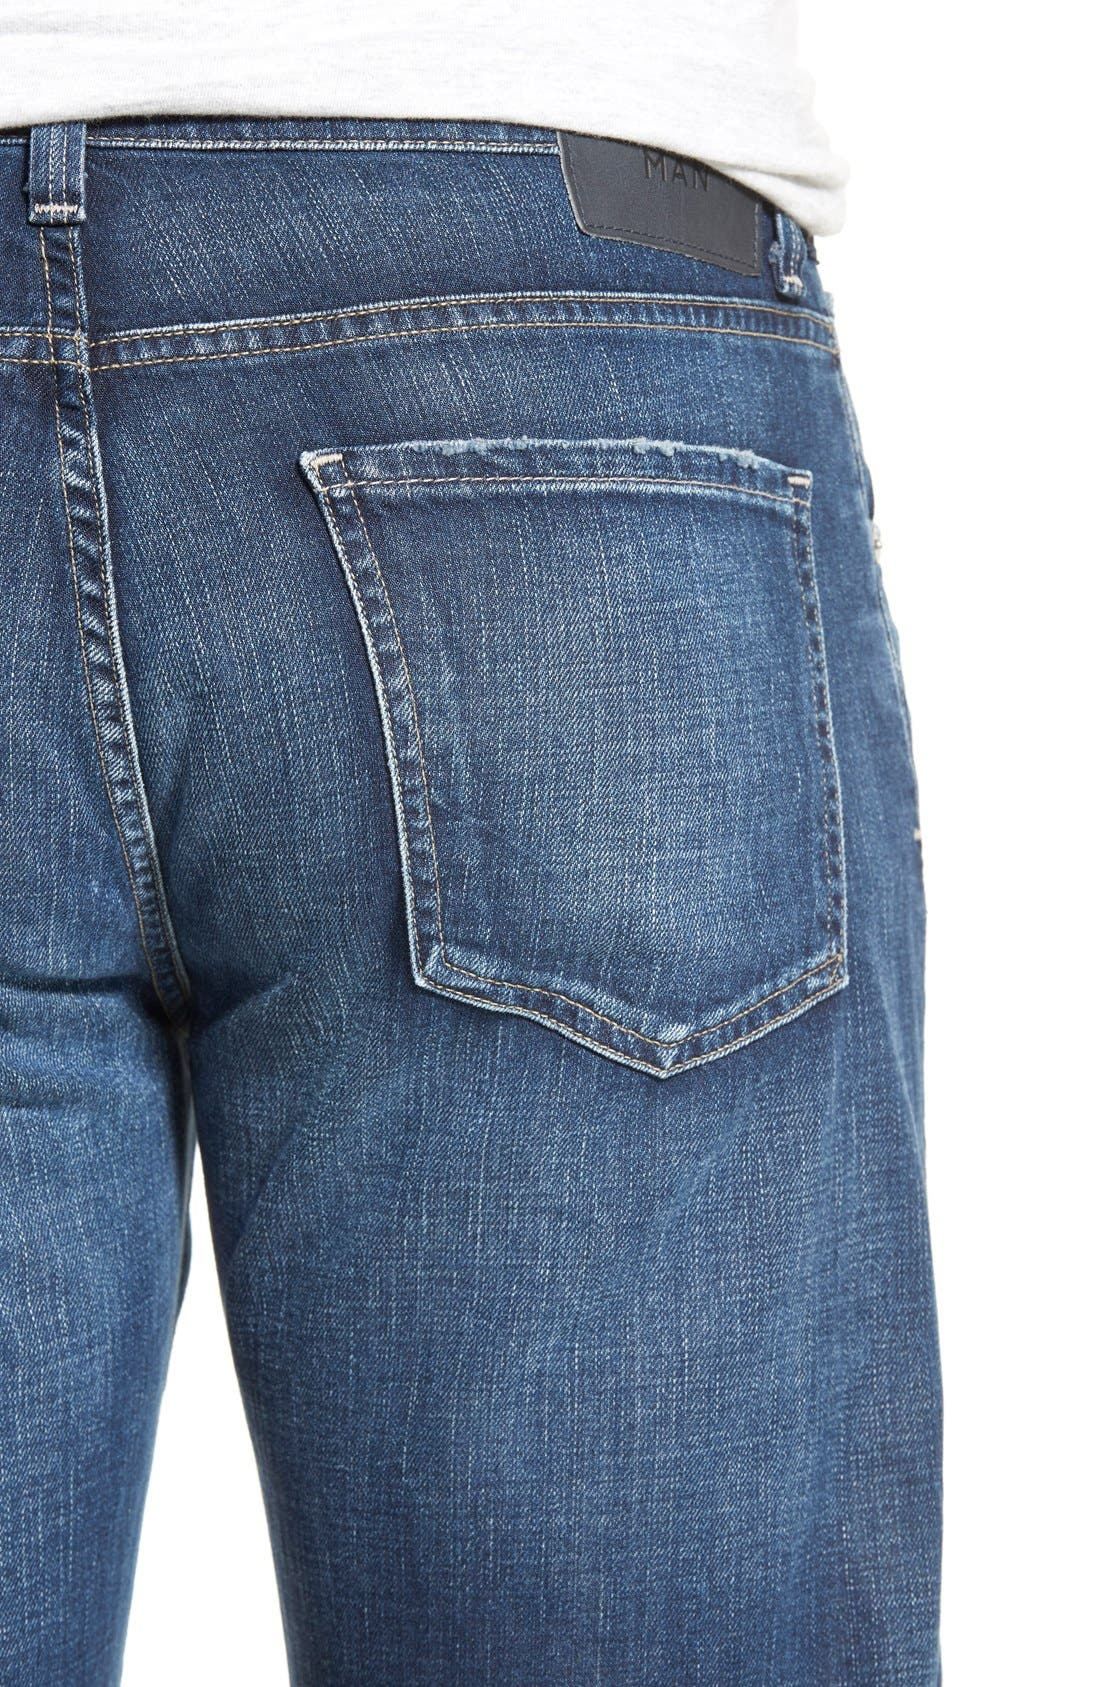 'Evans' Relaxed Fit Jeans,                             Alternate thumbnail 5, color,                             DERBY